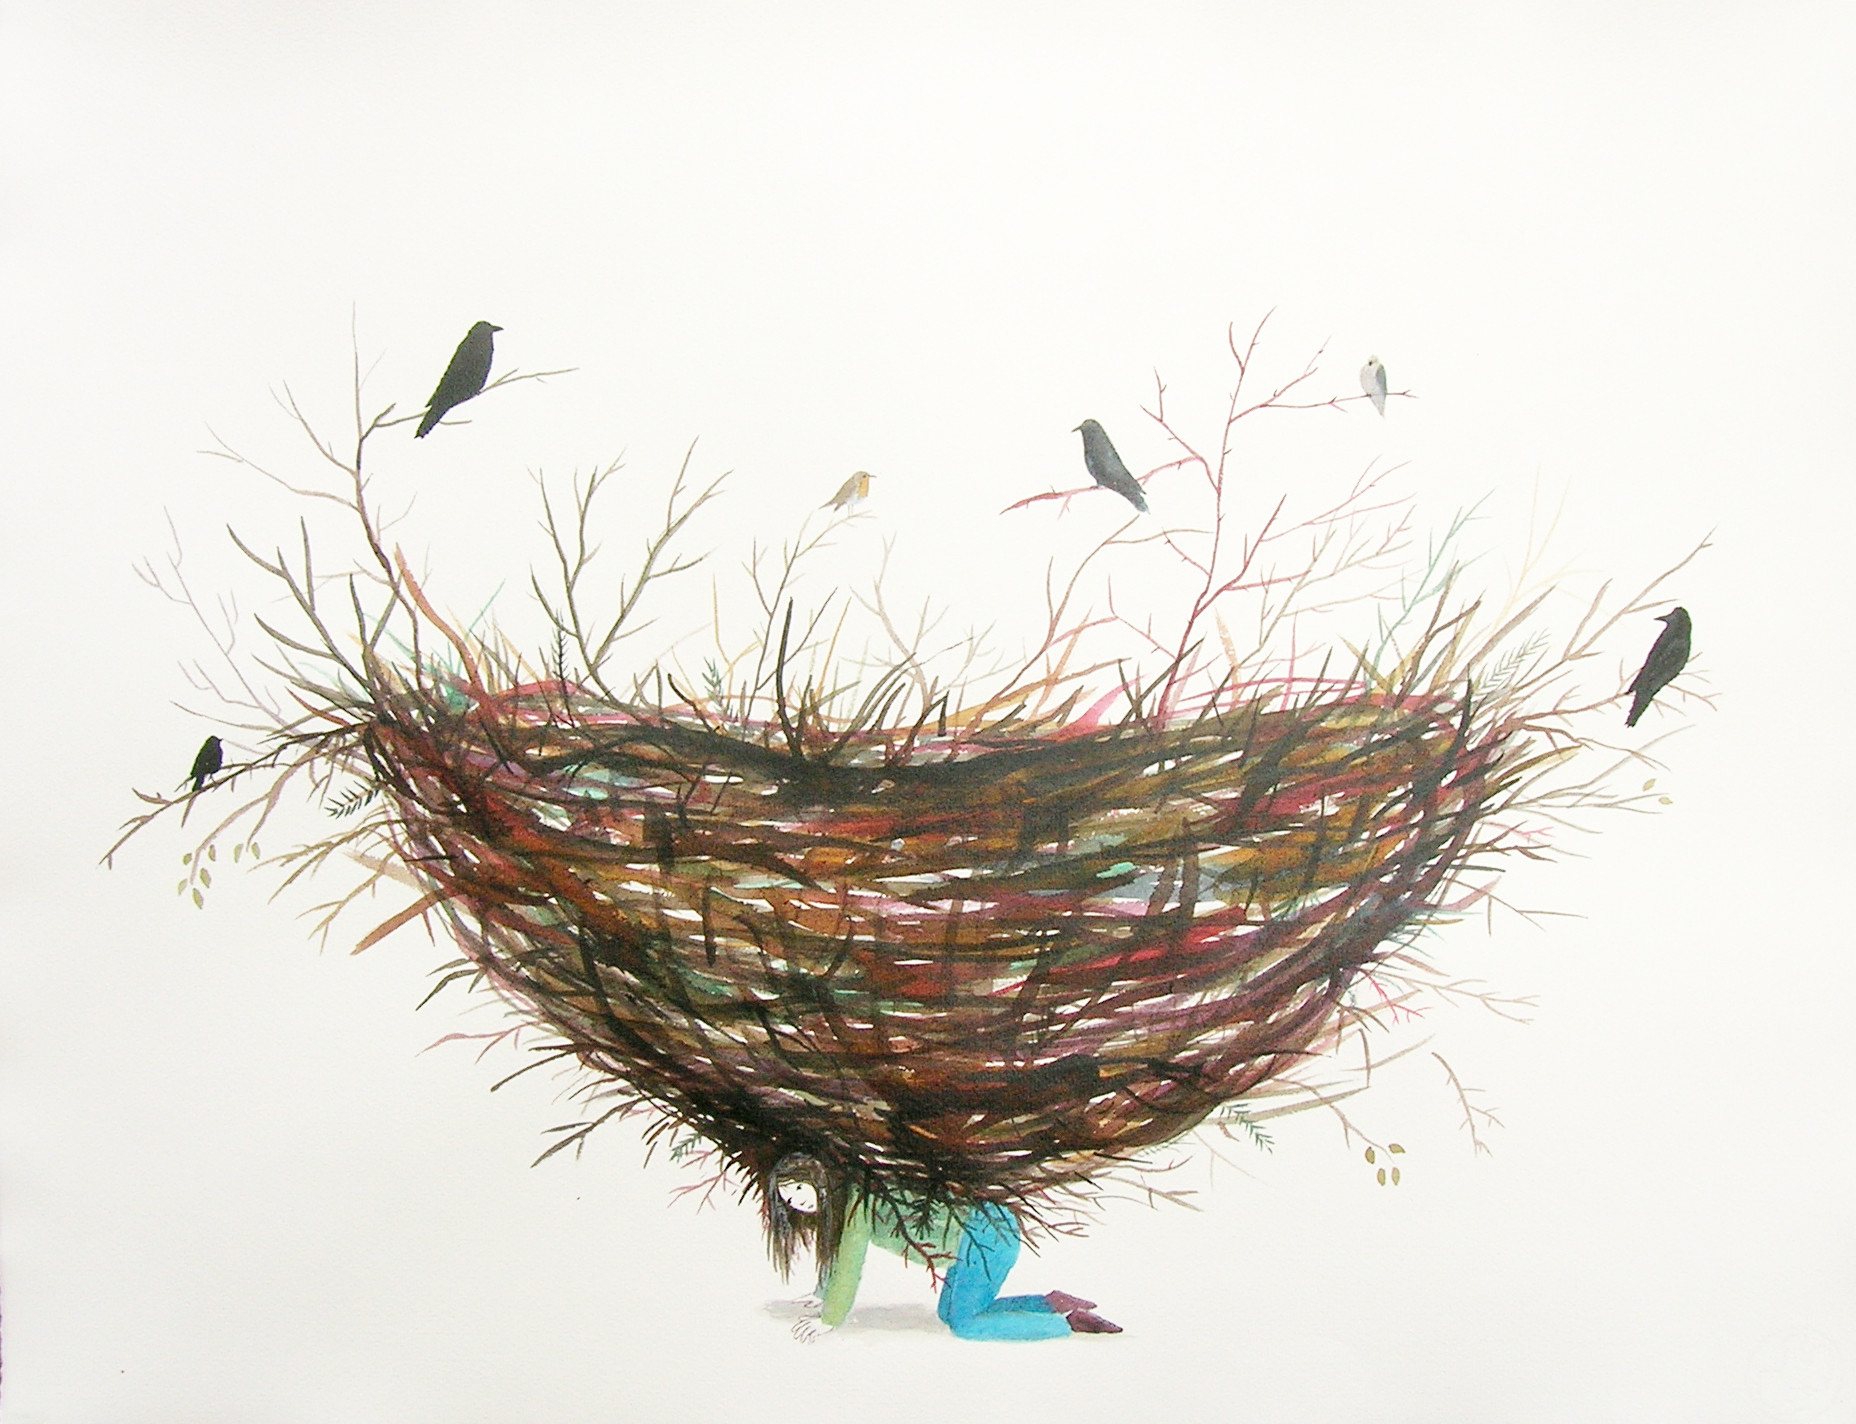 'The Birds Did Not Give Away', 2010